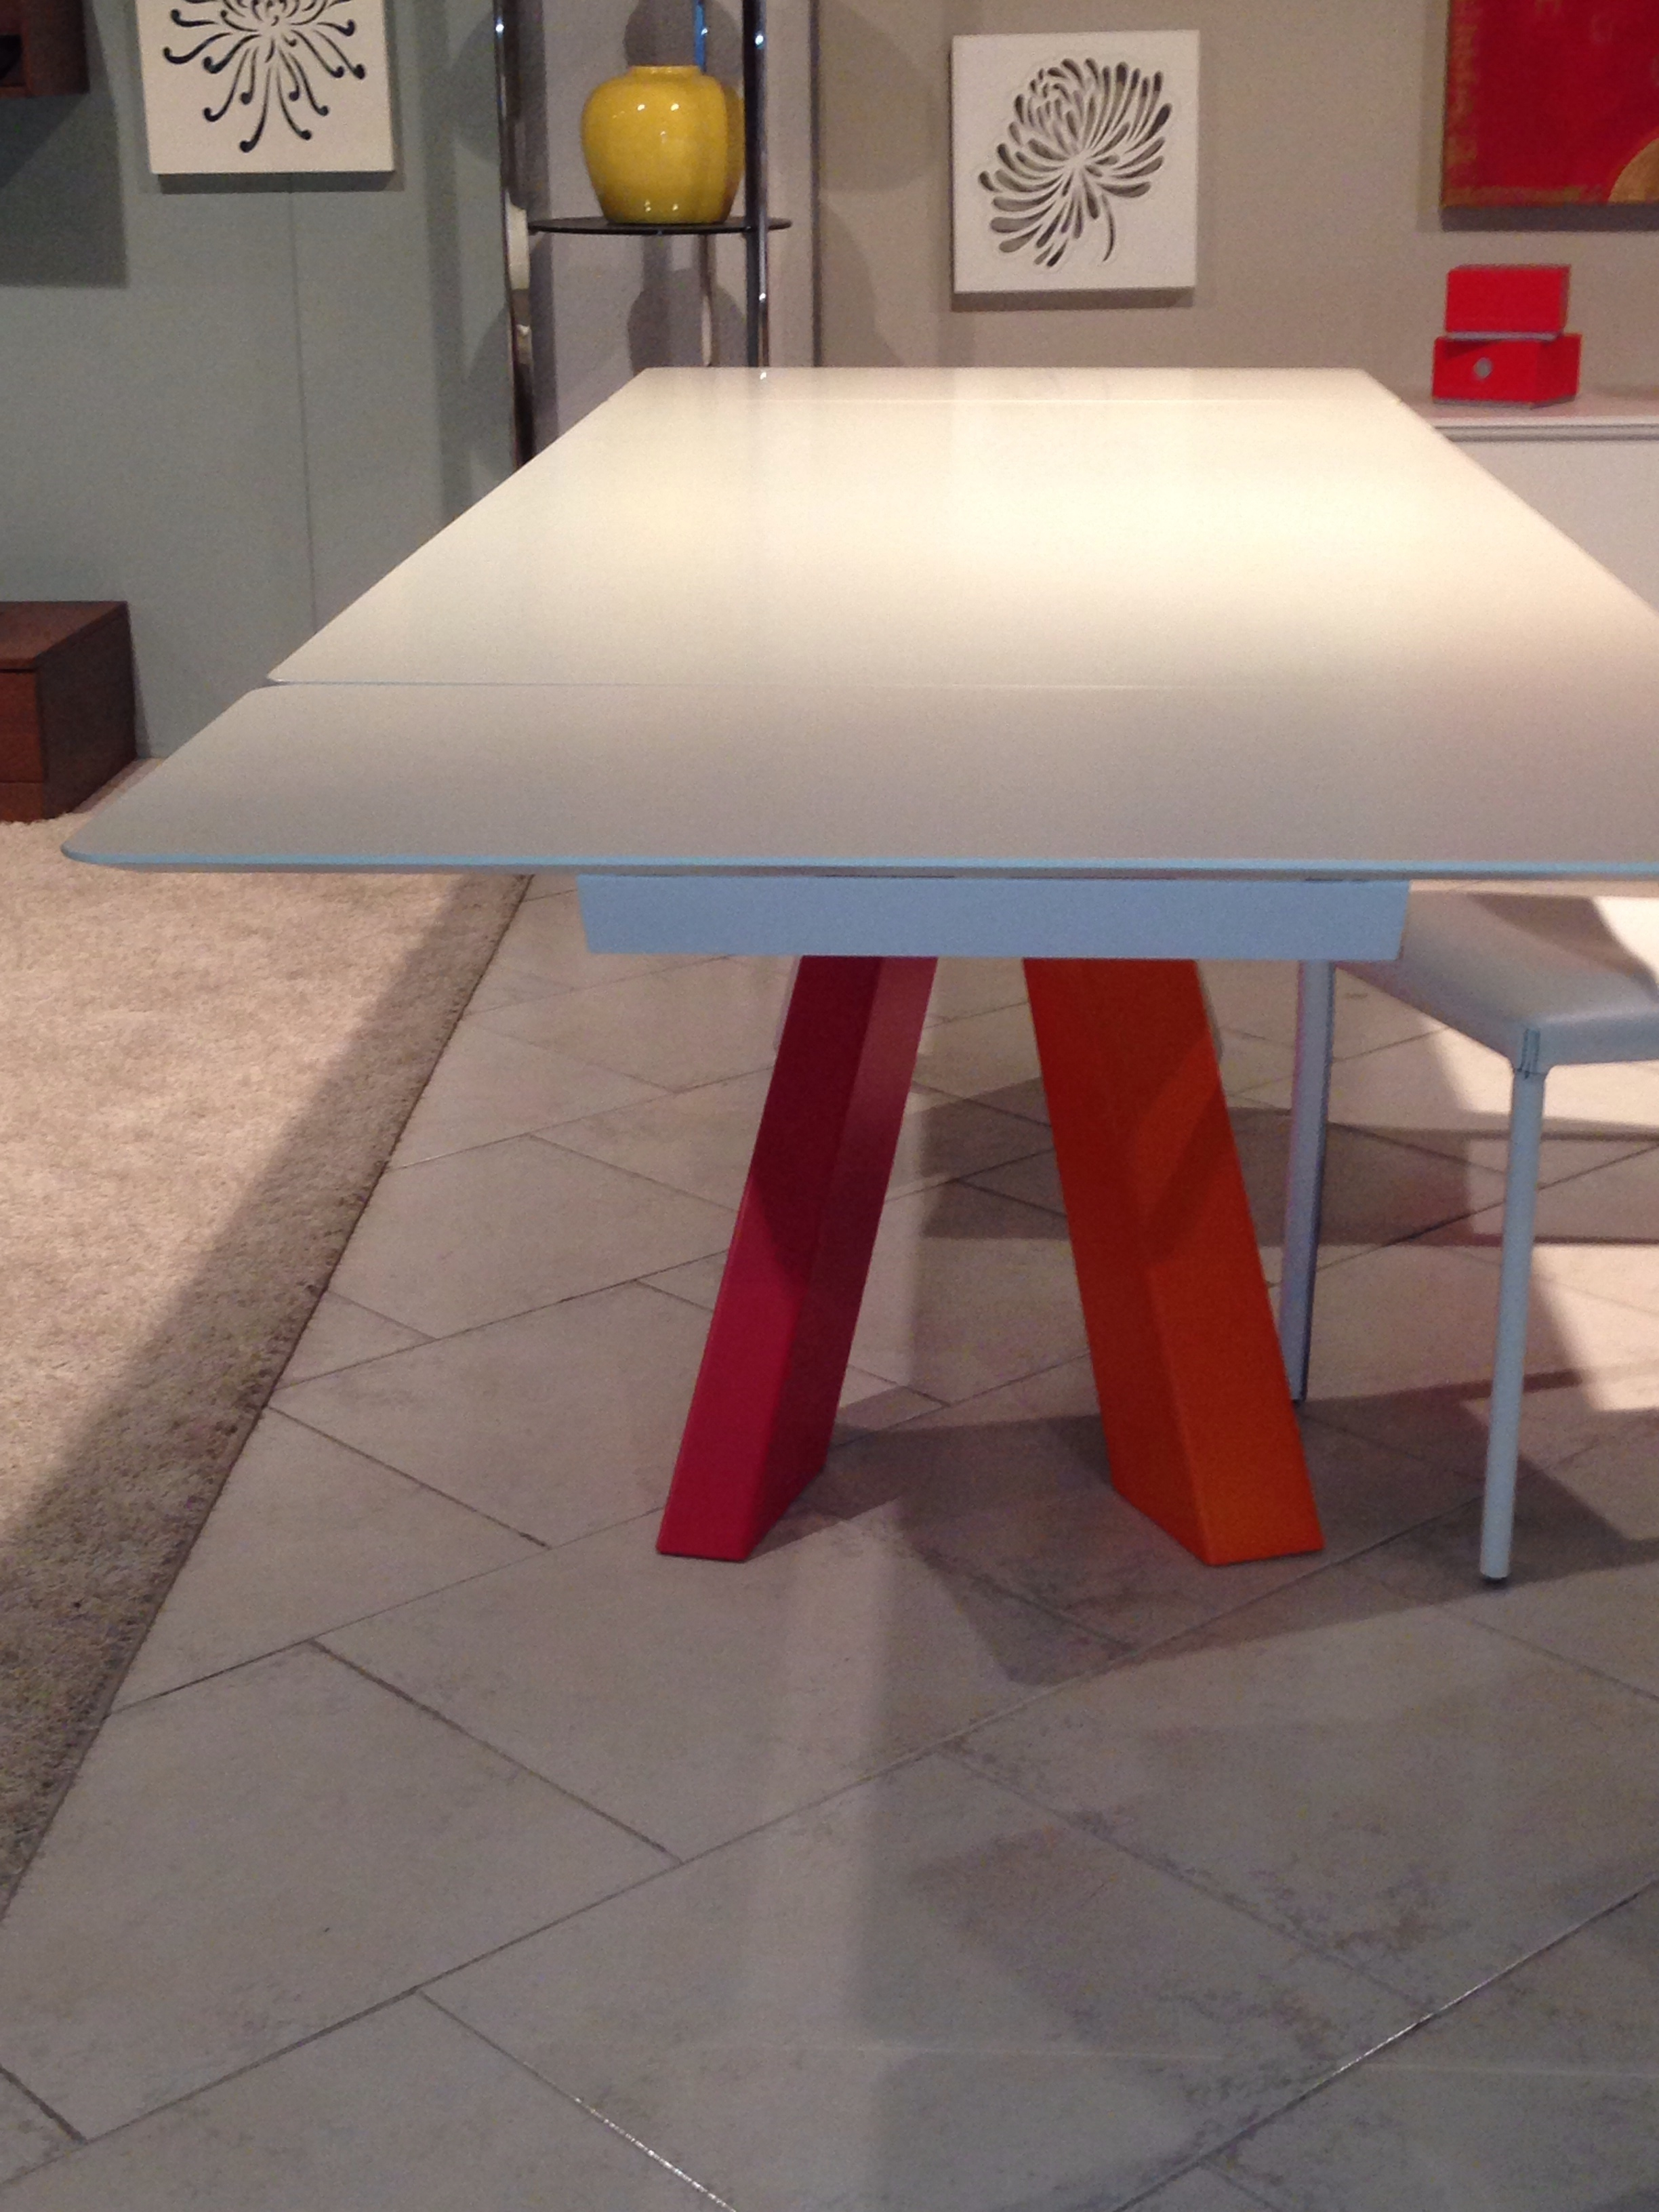 Awesome Big Table Bonaldo Prezzo Images - Lepicentre.info ...